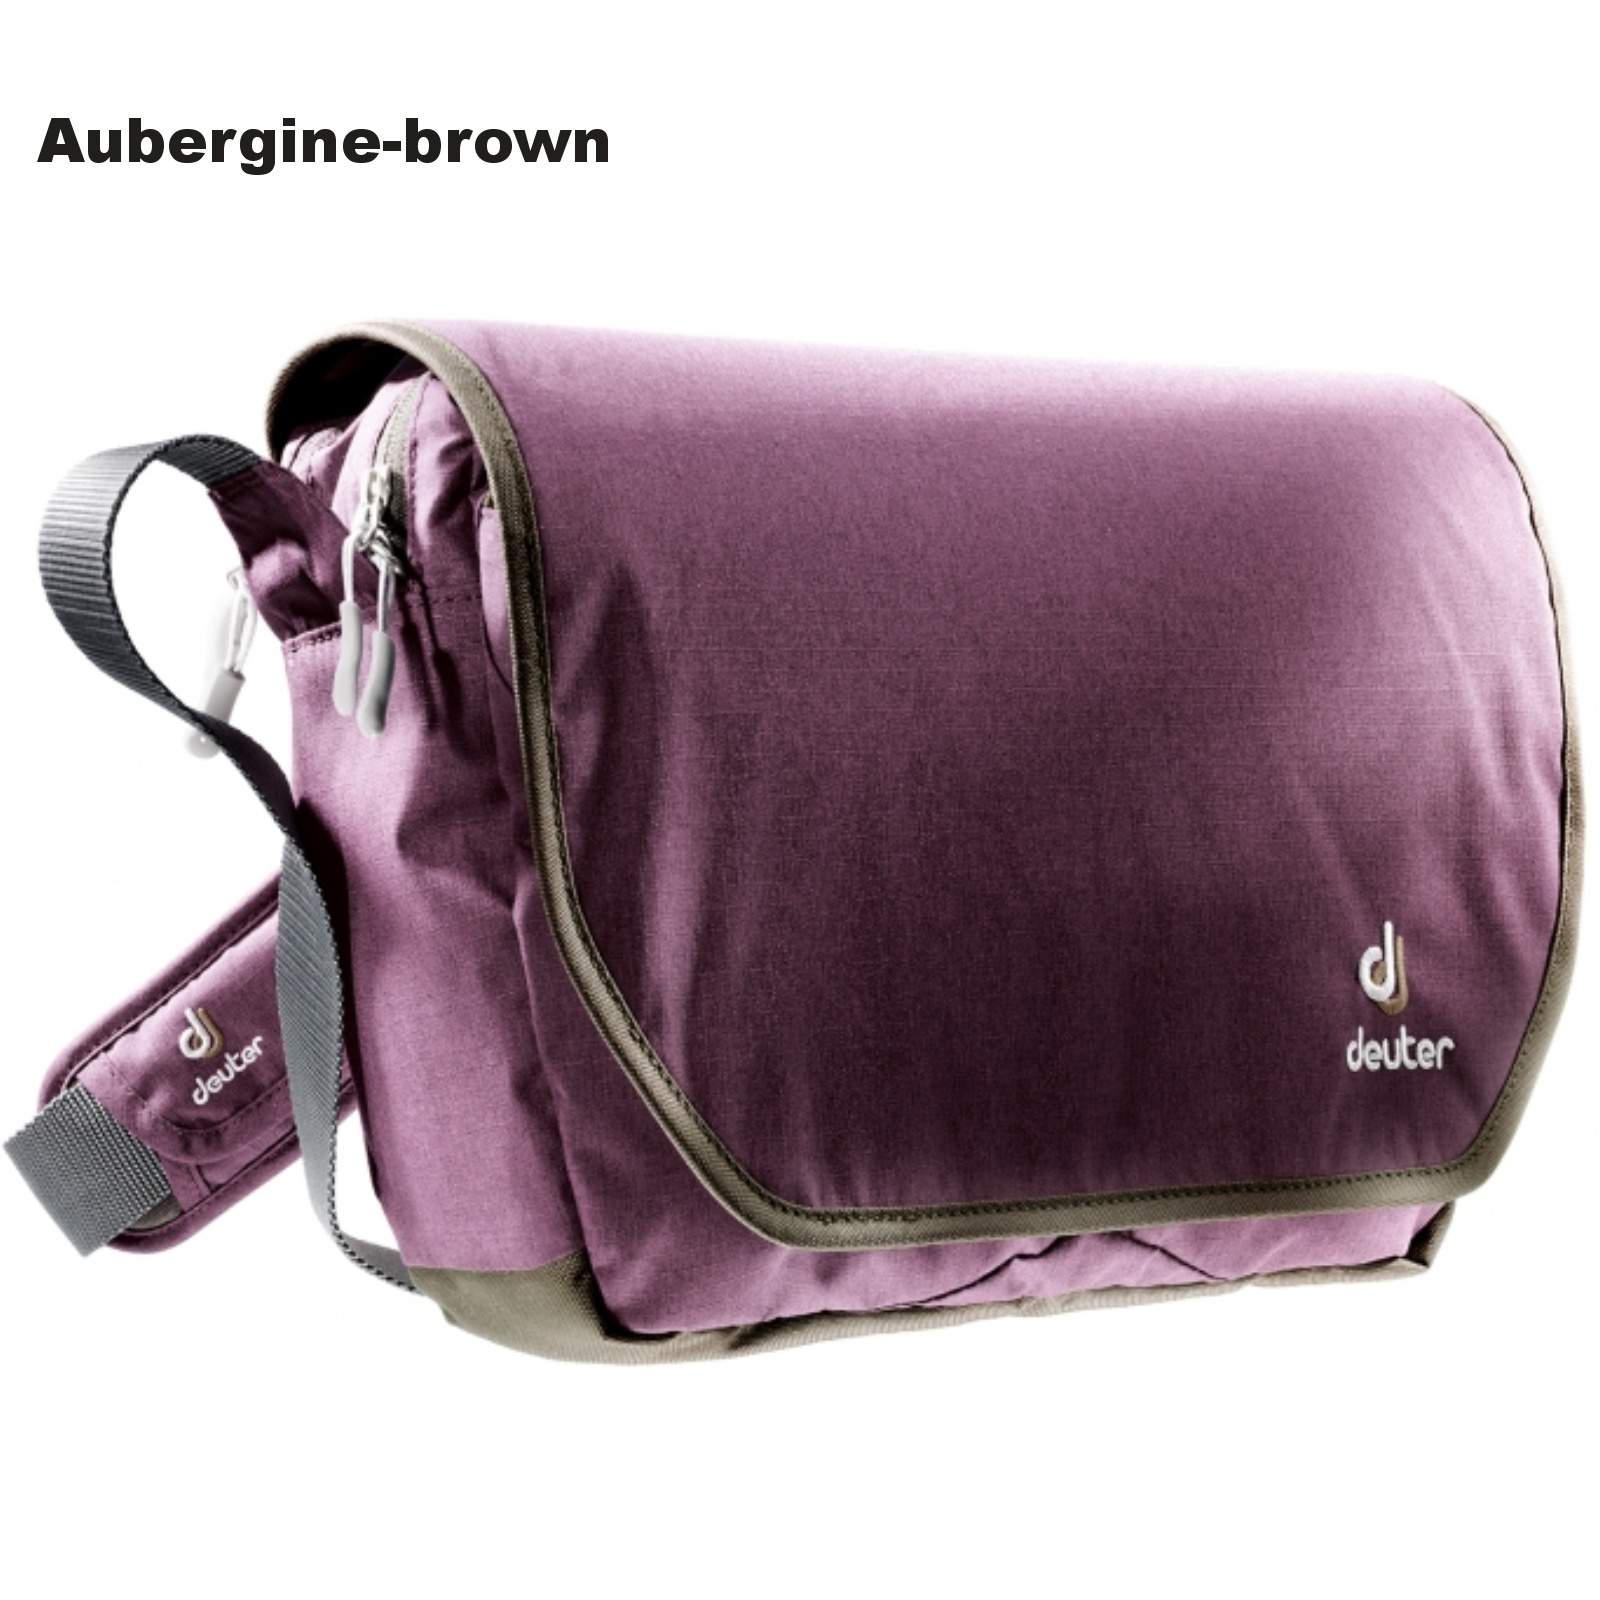 Taška přes rameno DEUTER Carry out - aubergine-brown